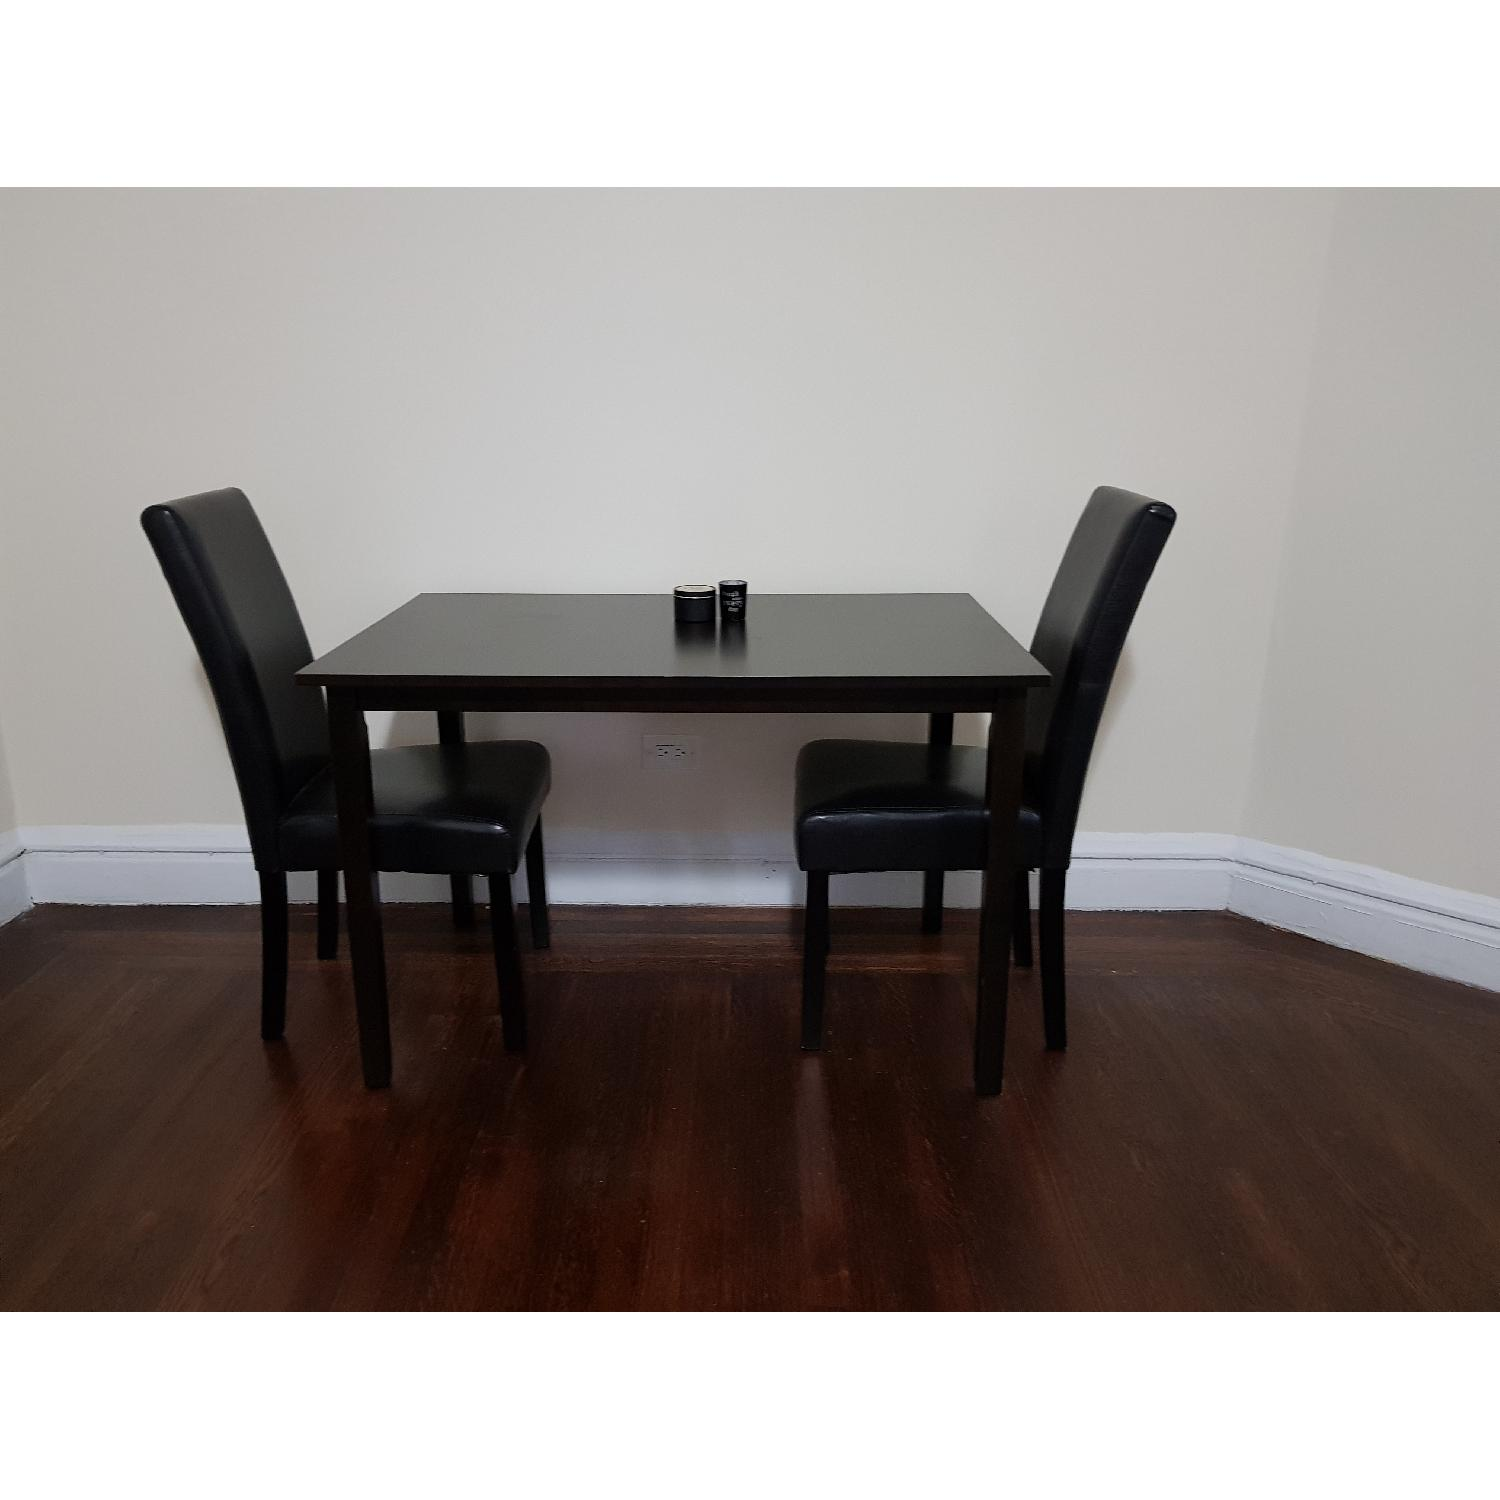 Simple Living Shaker Dining Table W/ 2 Chairs ...